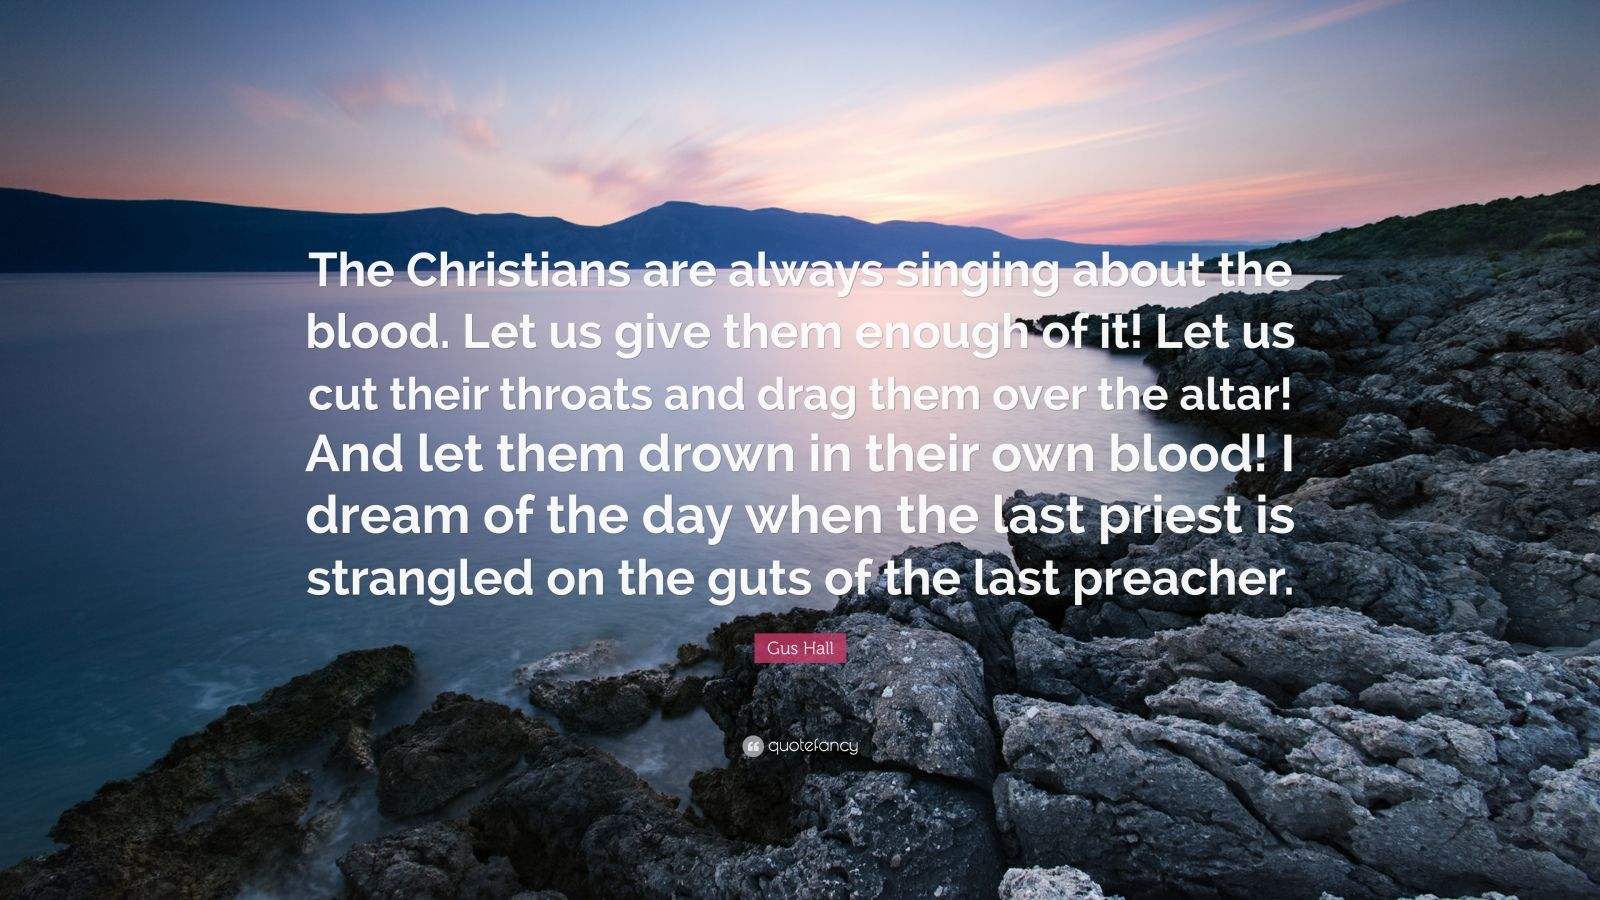 "Gus Hall Quote: ""The Christians are always singing about the blood. Let us give them enough of it! Let us cut their throats and drag them over the altar! And let them drown in their own blood! I dream of the day when the last priest is strangled on the guts of the last preacher."""